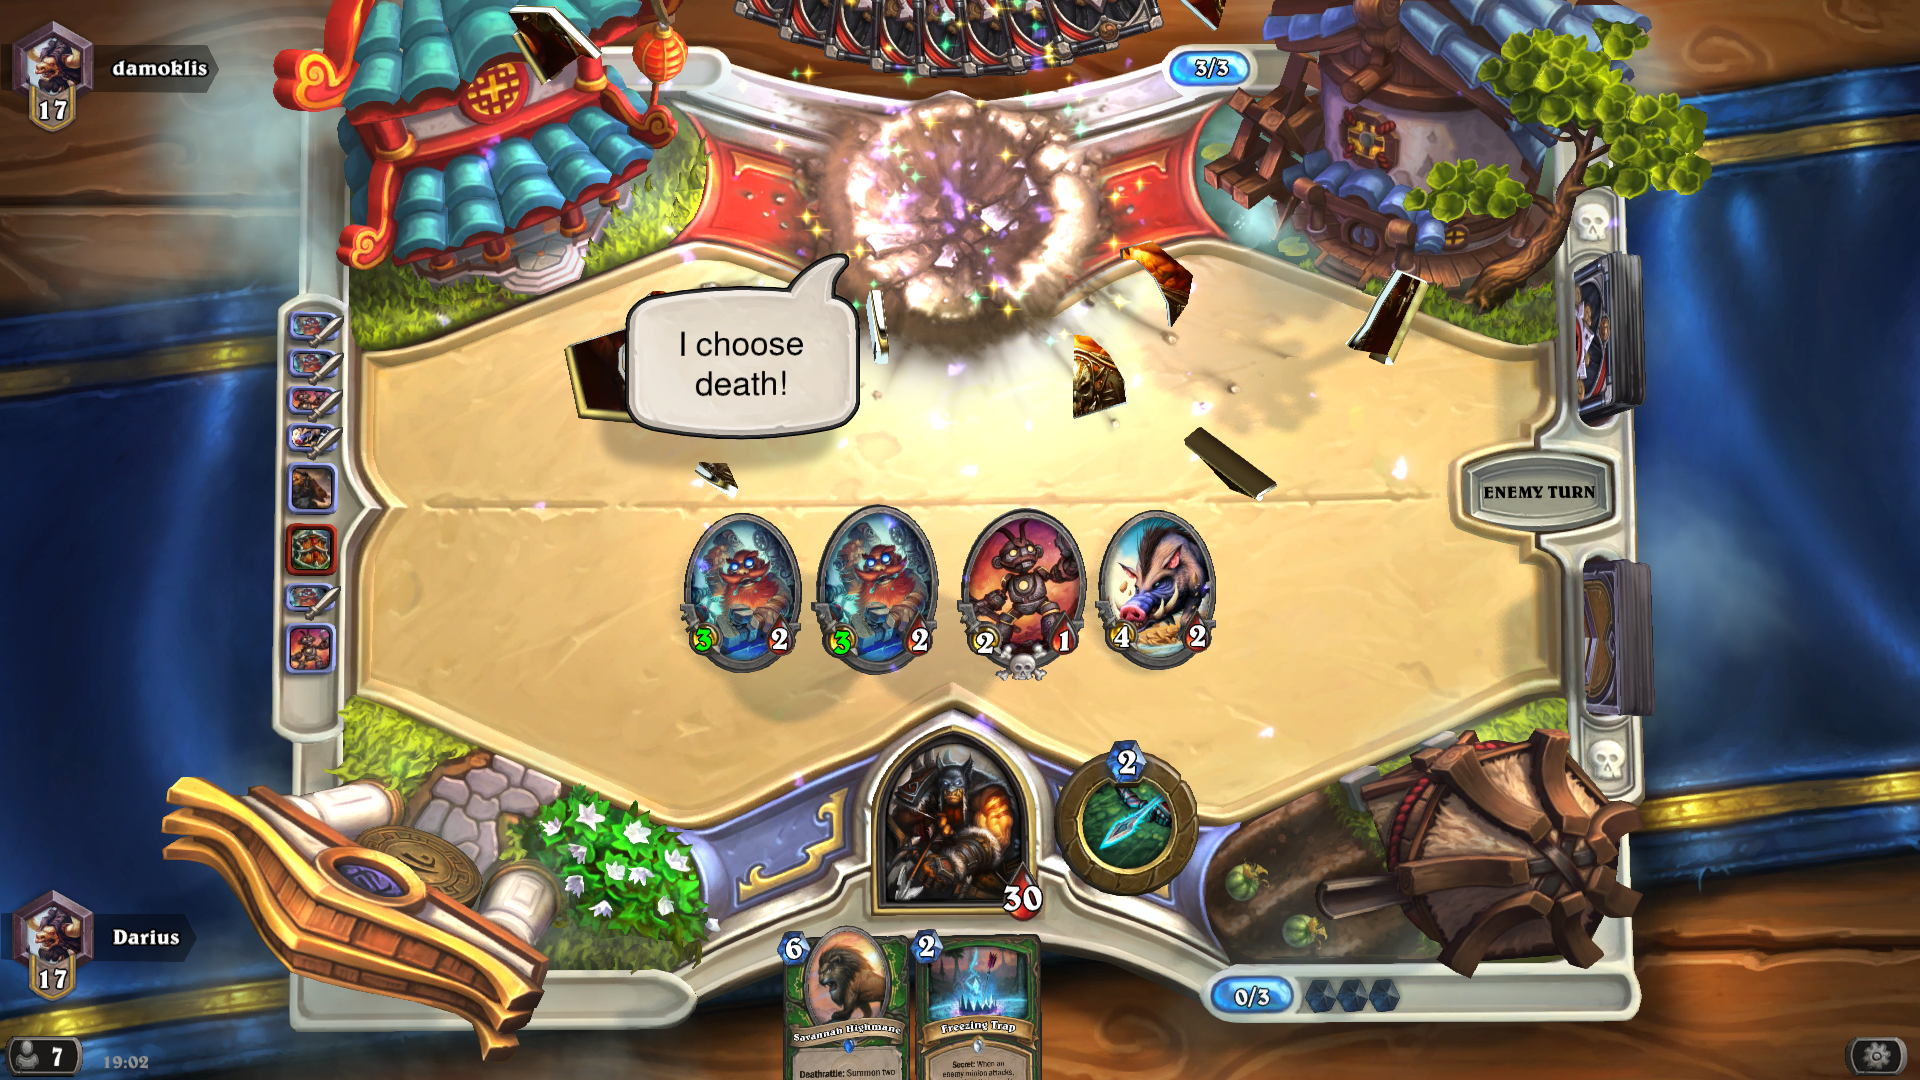 Hearthstone Screenshot 08-04-15 19.02.45.png